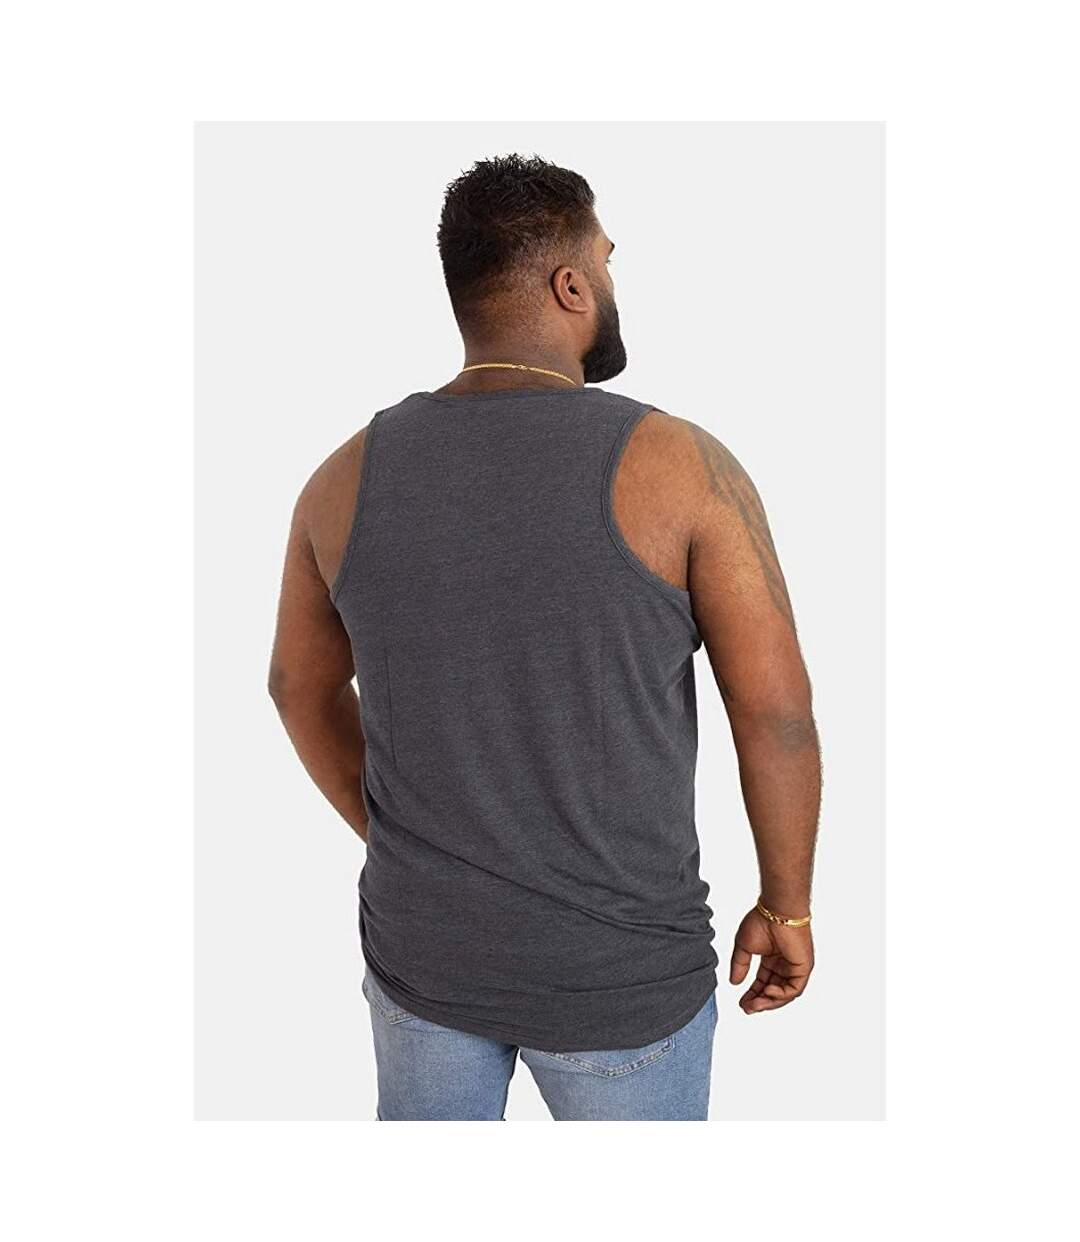 Duke Mens Fabio-1 Kingsize Muscle Vest (Grey Melange) - UTDC171